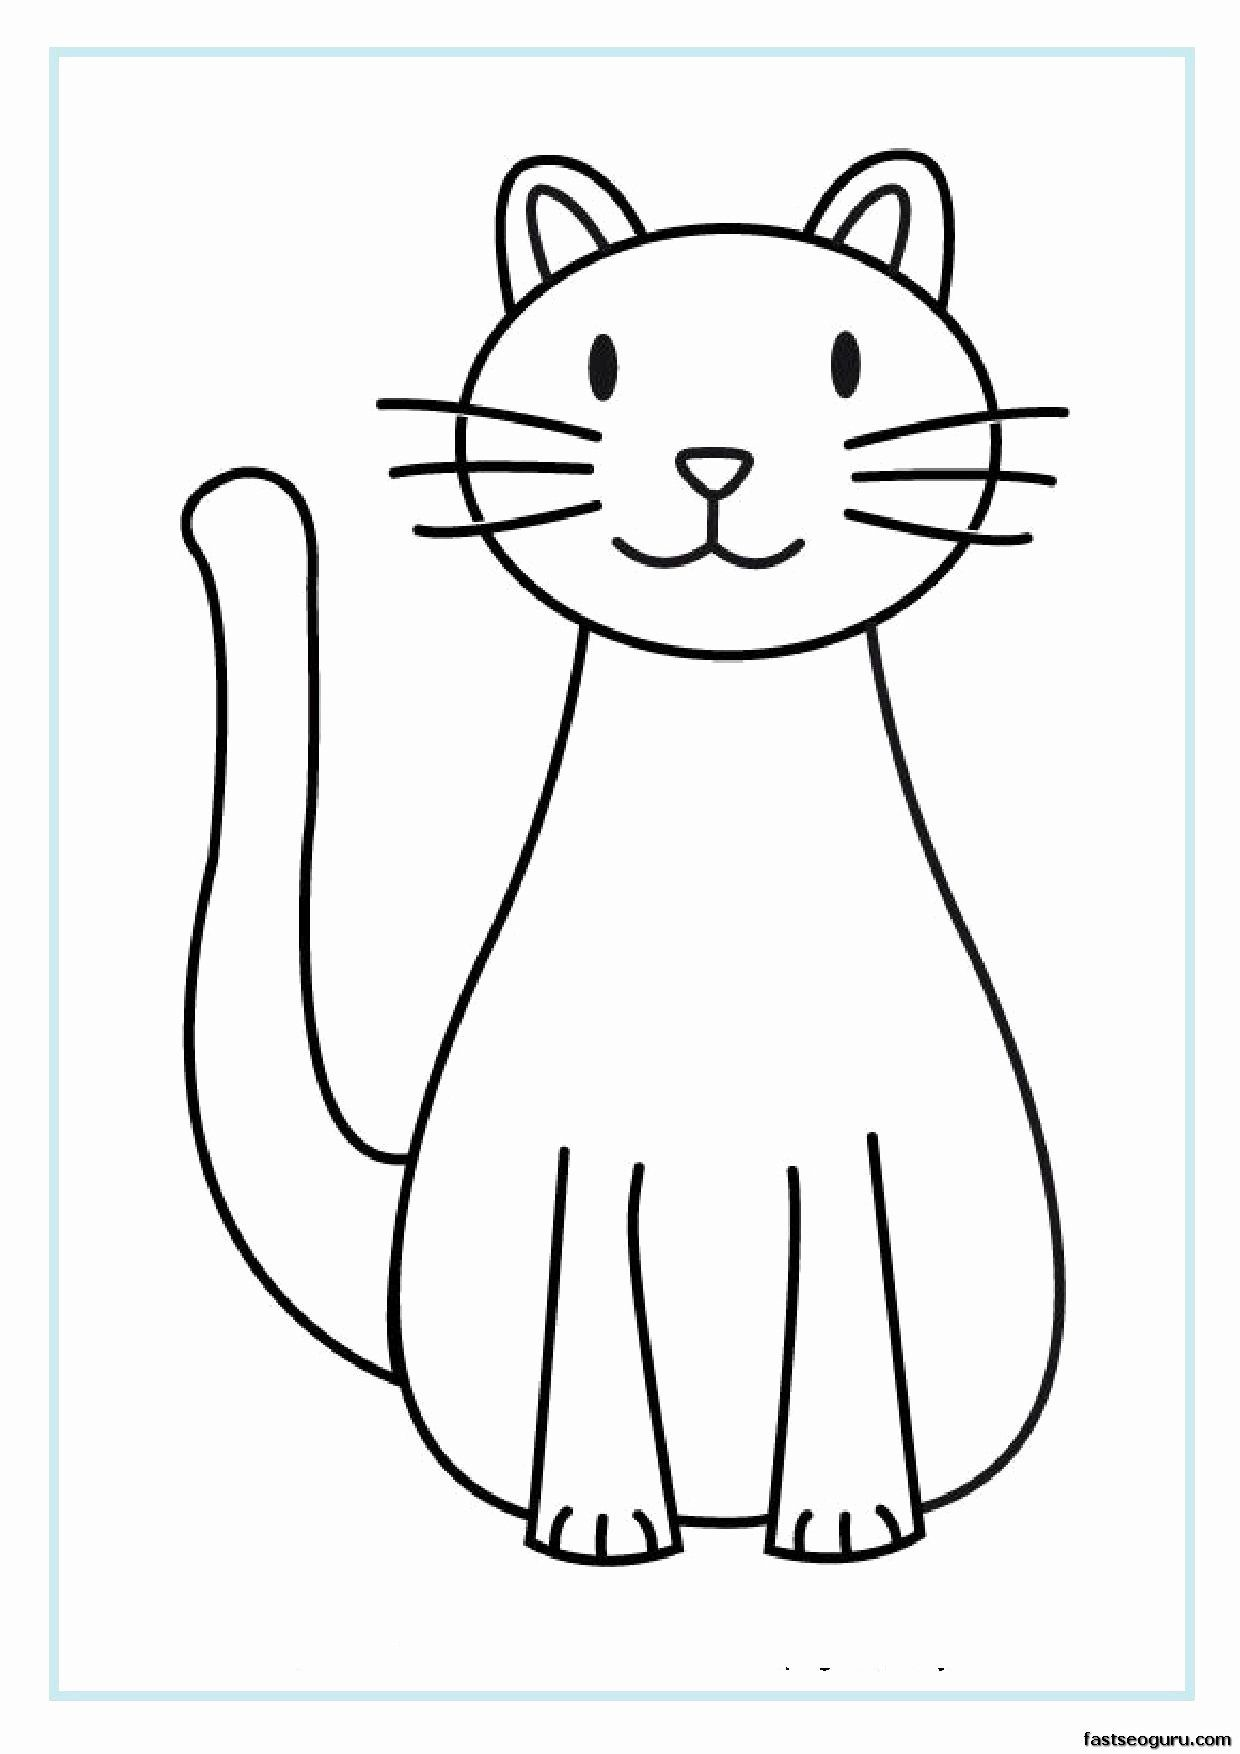 Cats Coloring Pages Free Printables Inspirational Beautiful Nyan Cat Coloring Page Easy Coloring Pages Kids Printable Coloring Pages Cat Coloring Page